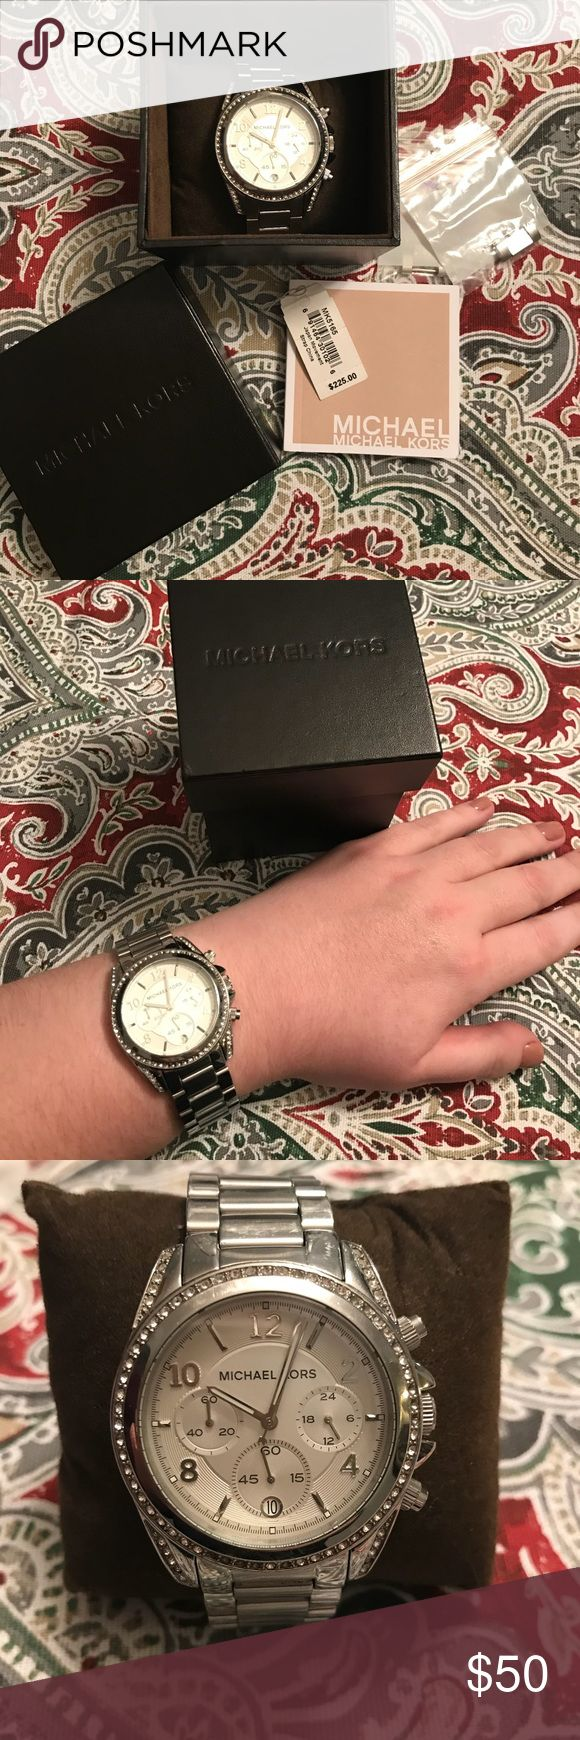 Michael Kors silver watch Michael Kors sterling silver watch Extra links to make watch bigger included  Links are easily removable to make smaller as well A few rhinestones are missing, but not noticeable MICHAEL Michael Kors Jewelry